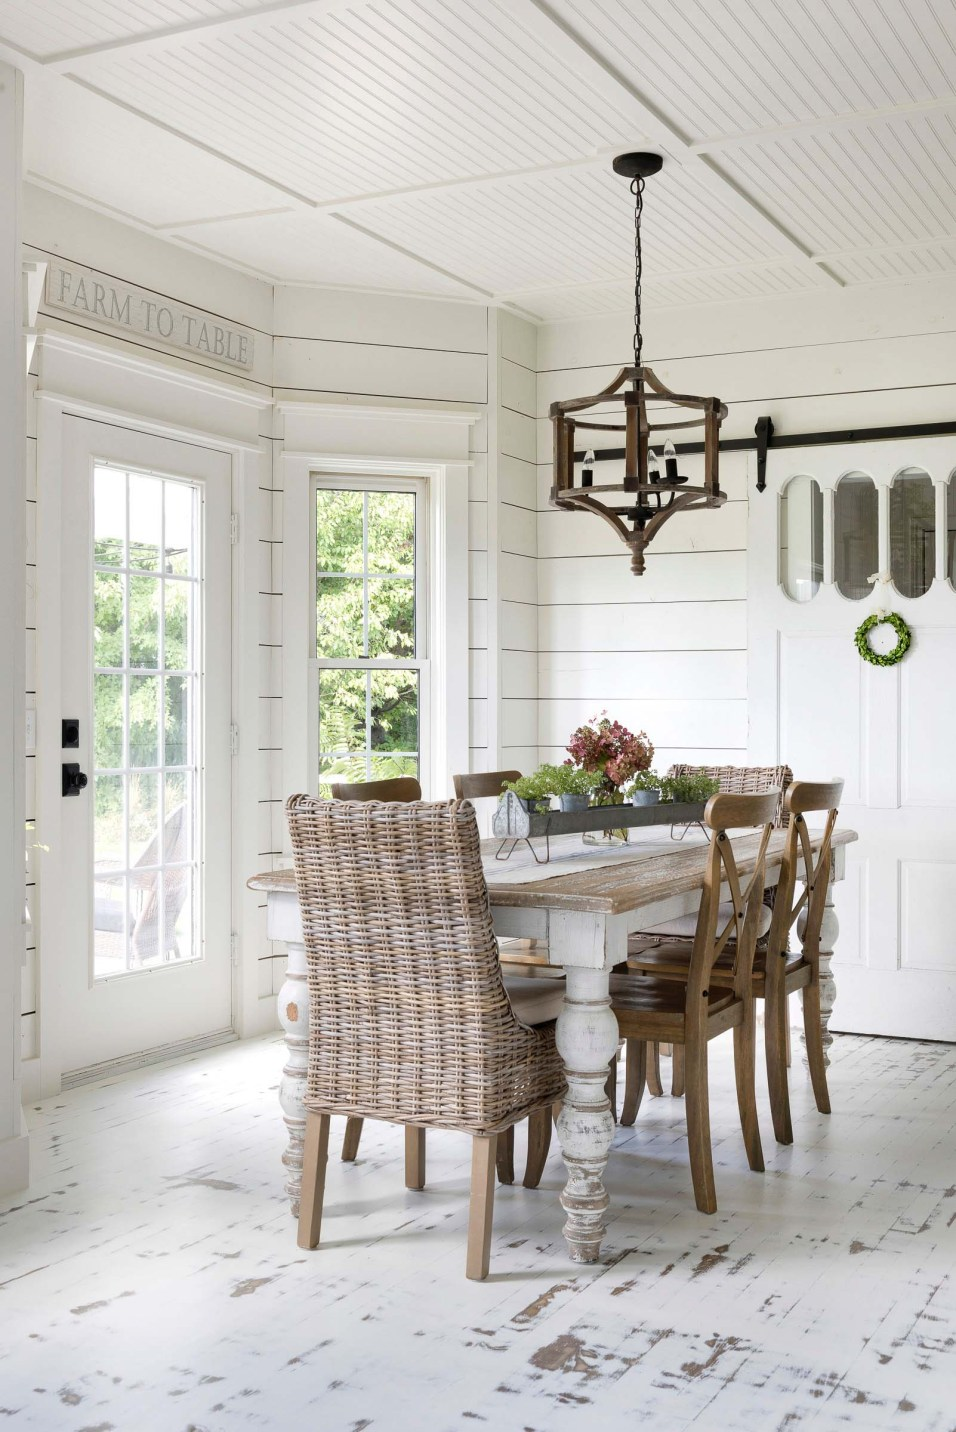 Beautiful Chaos Farmhouse Dining Room with Salvaged Furniture